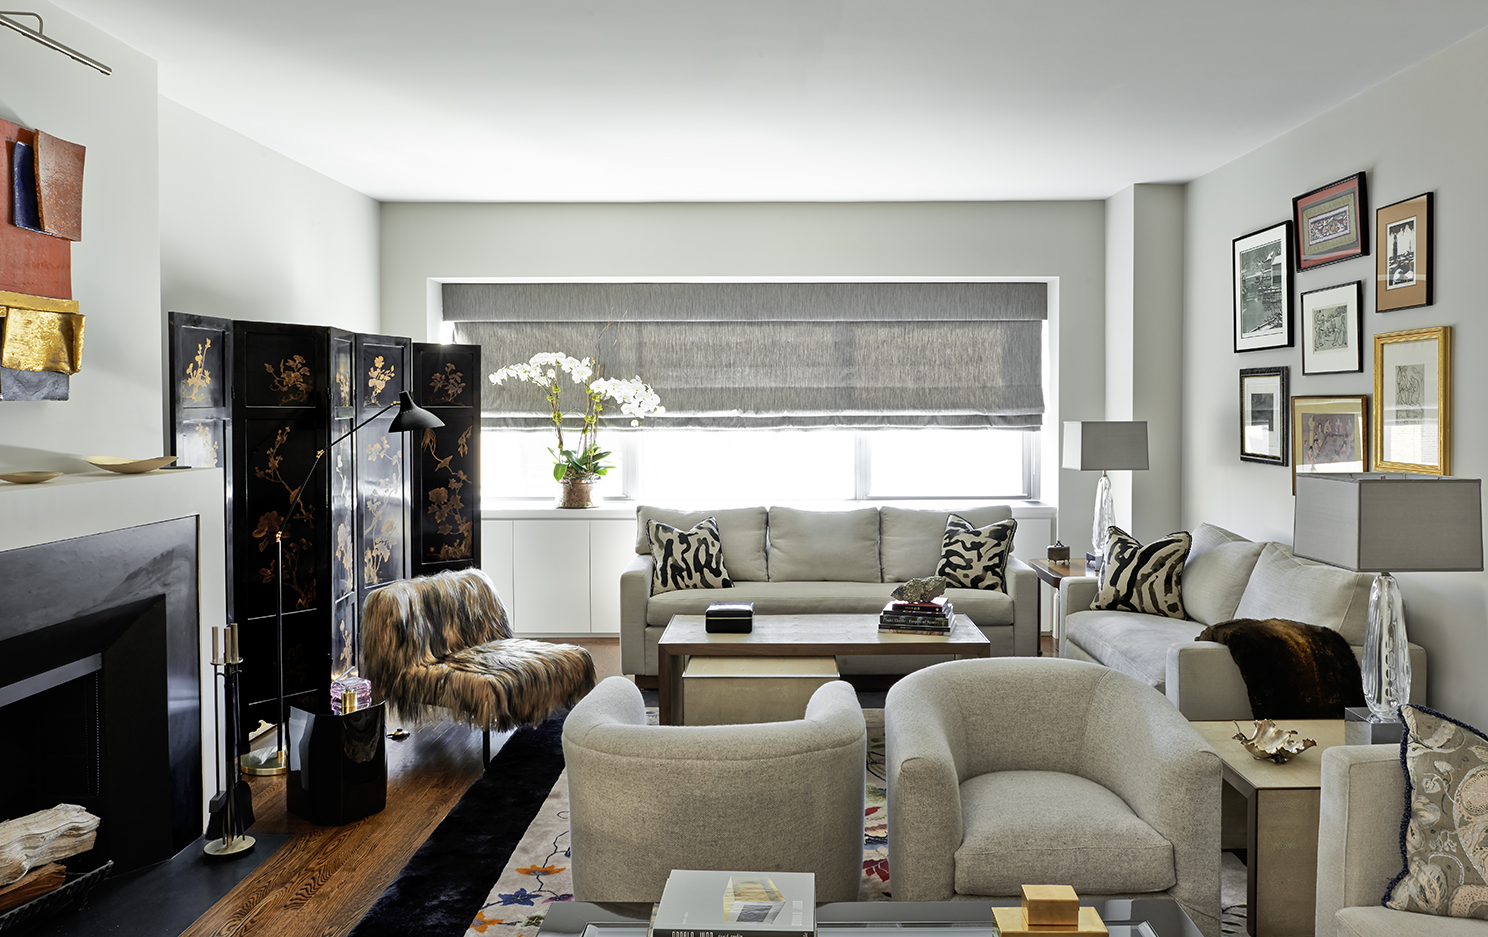 Park Avenue apartment - living room by Katch I.D. Interiors